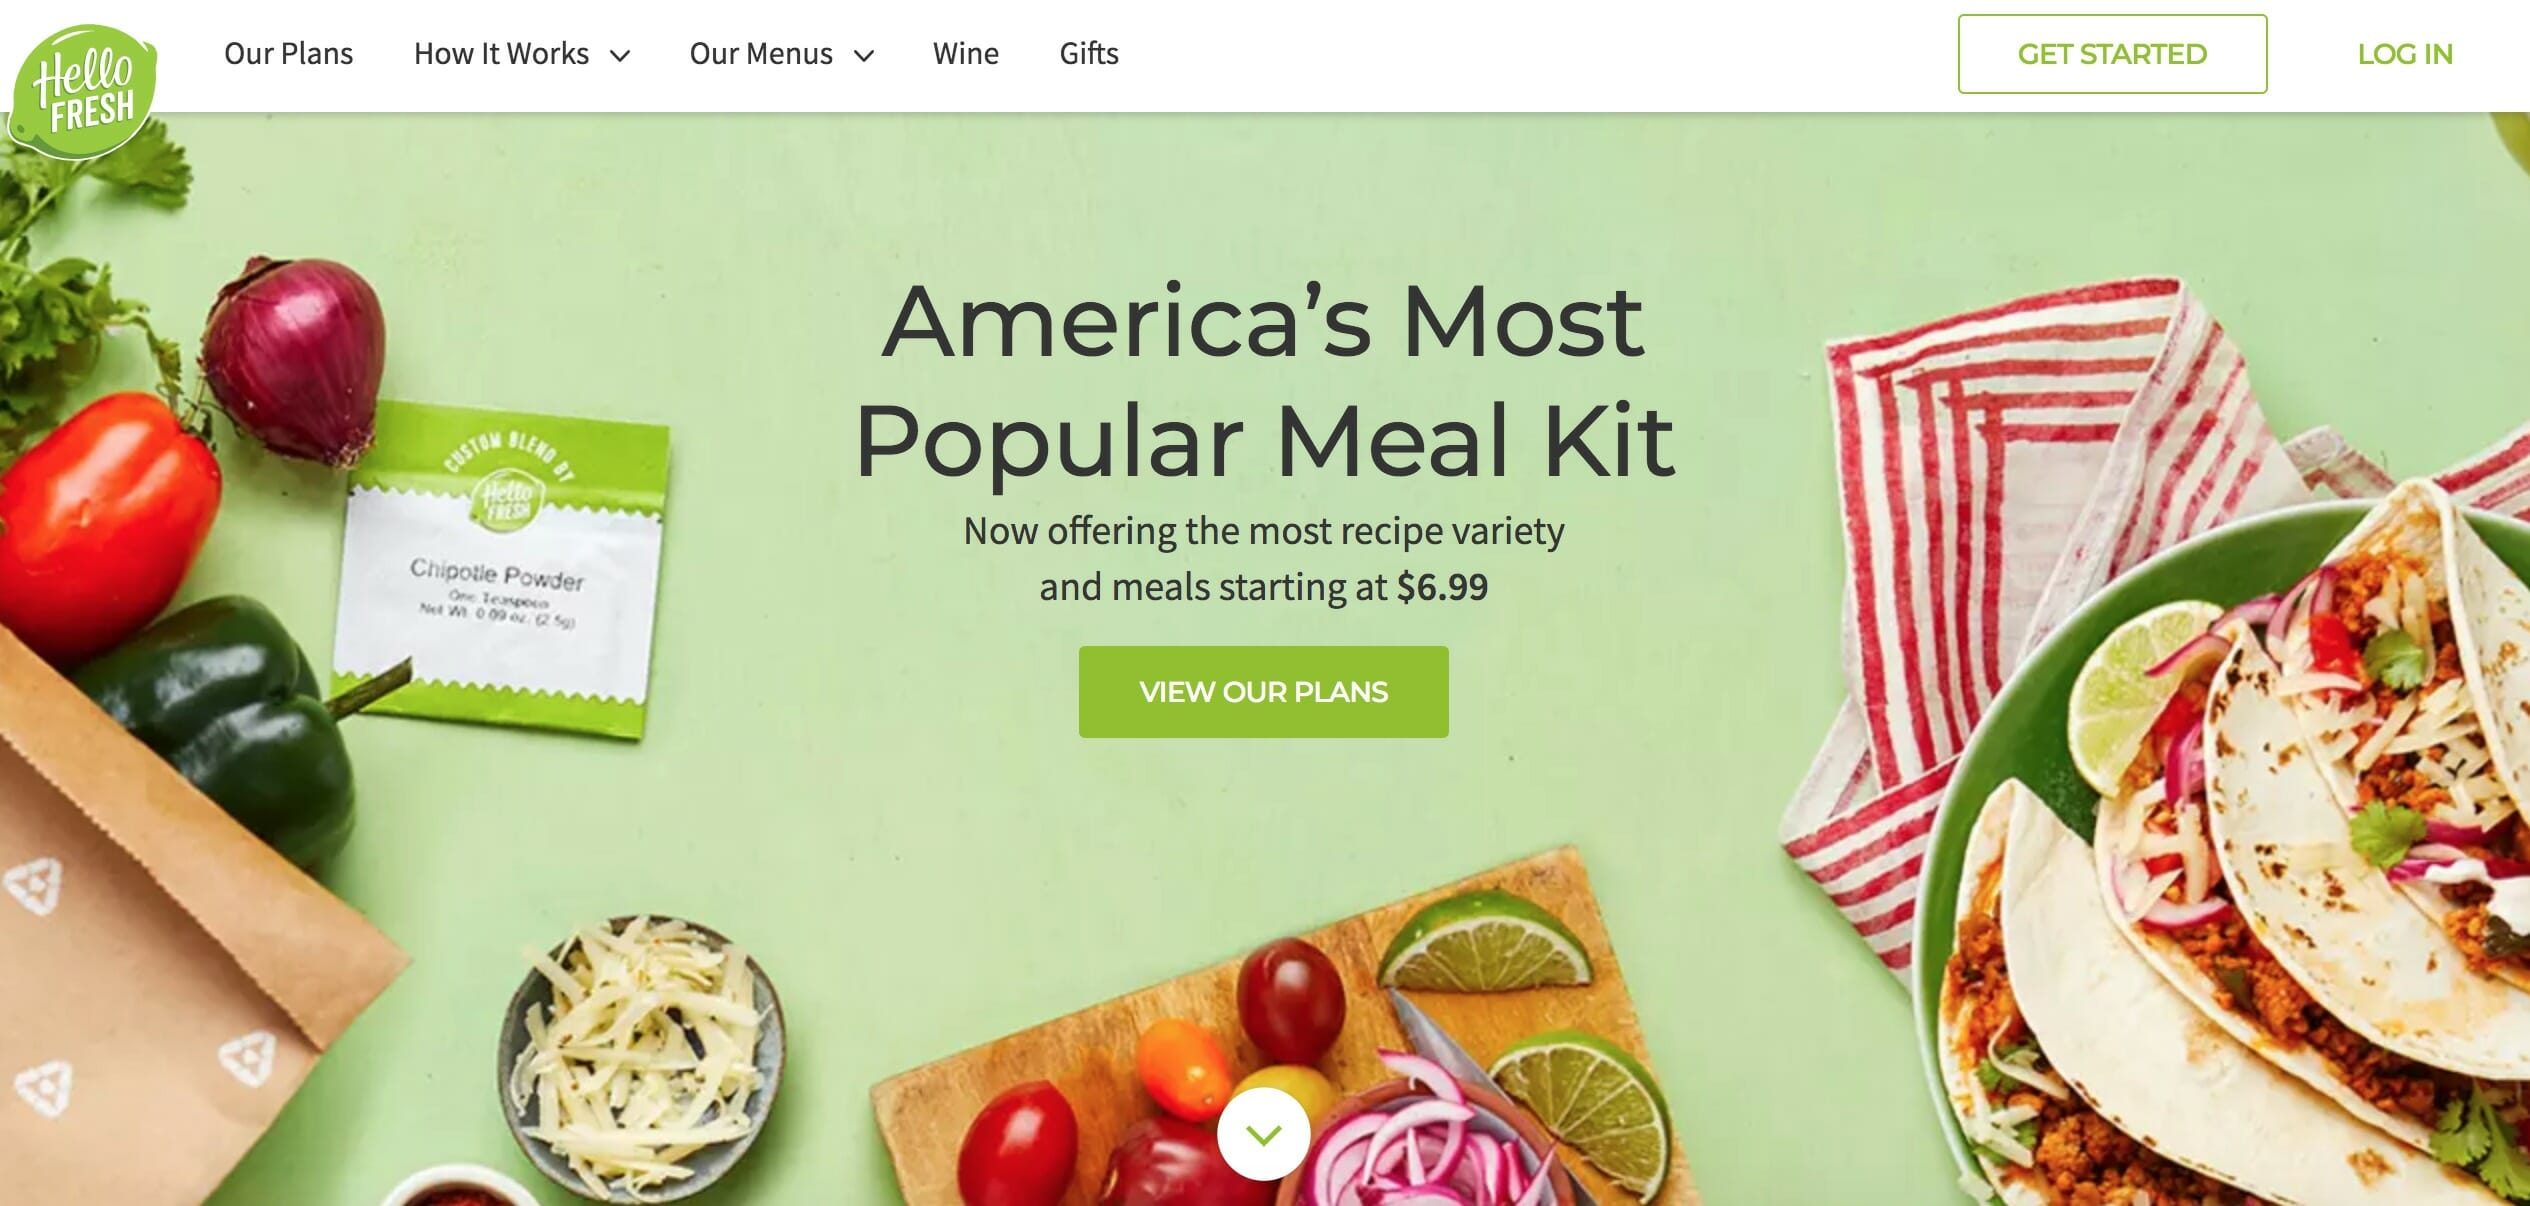 Hellofresh Meal Kit Delivery Service  Coupons That Work April